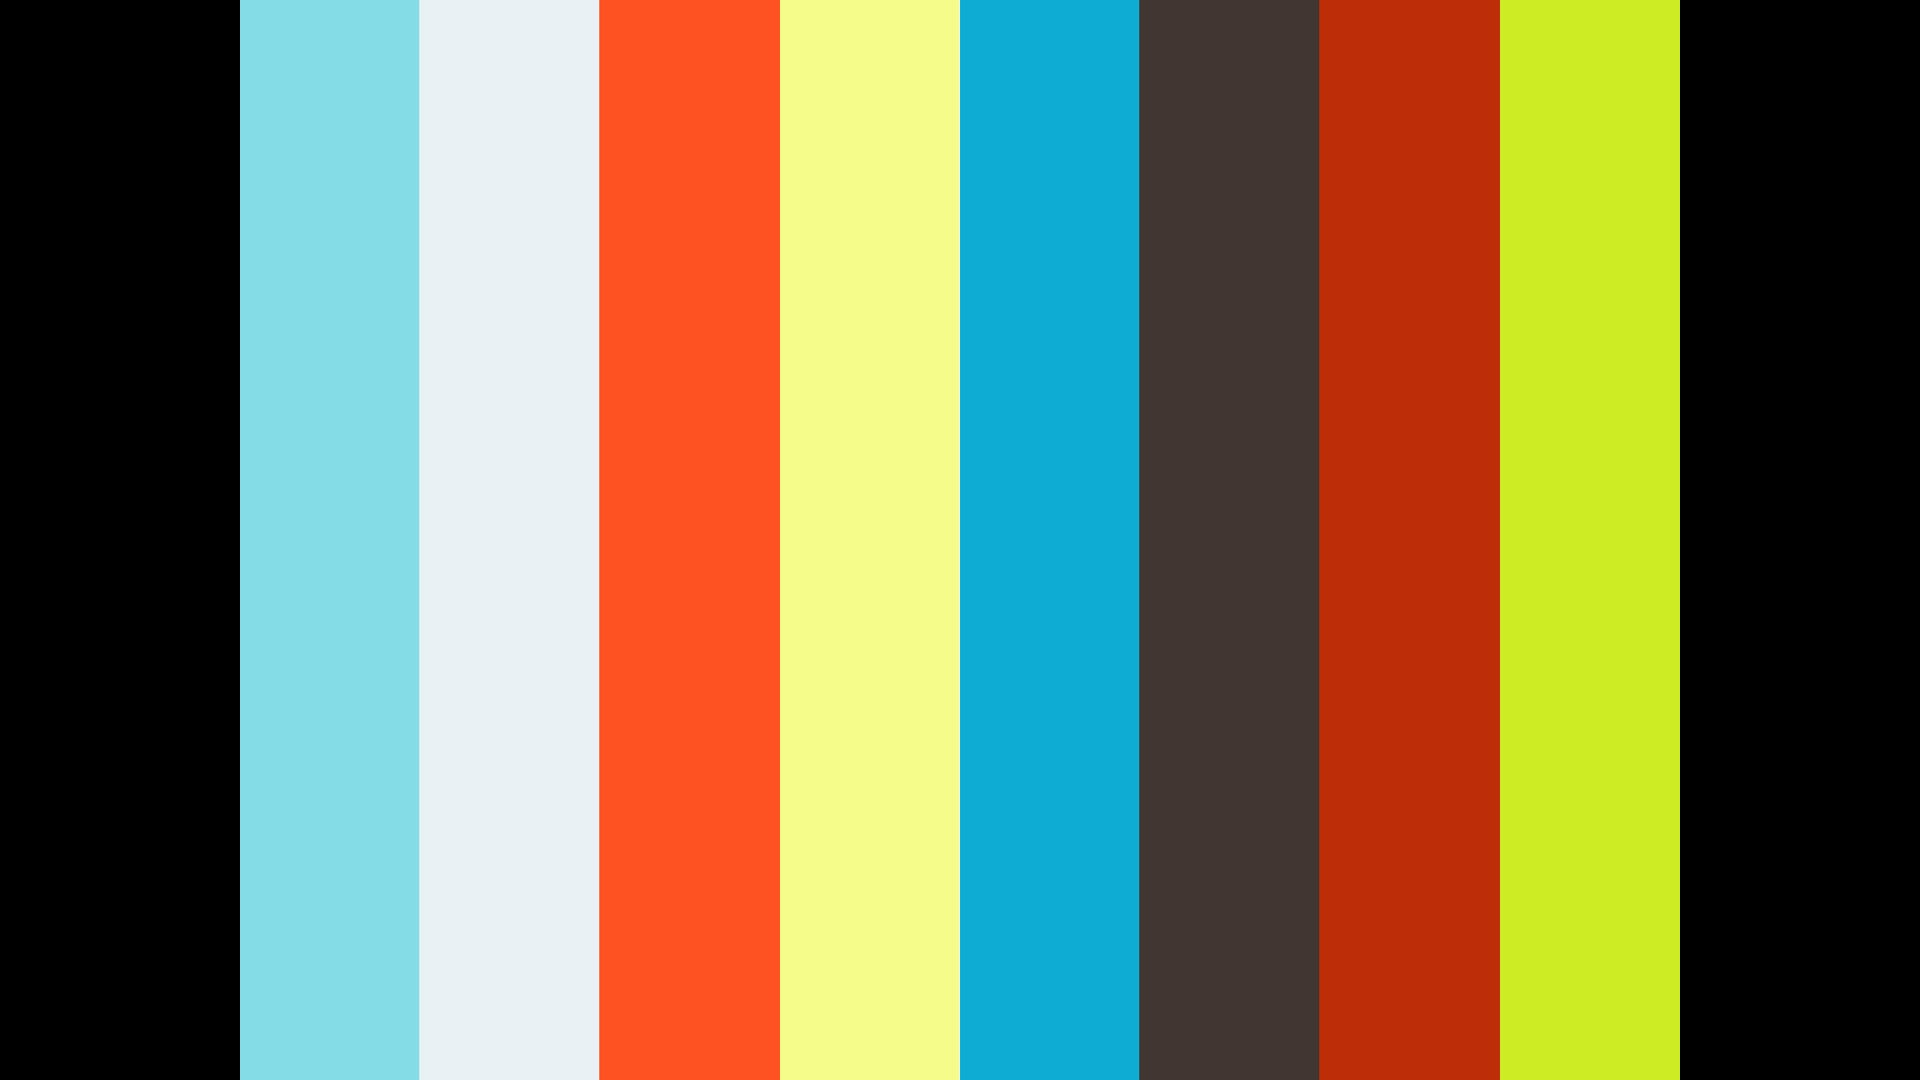 Talk by Kader Attia [9]